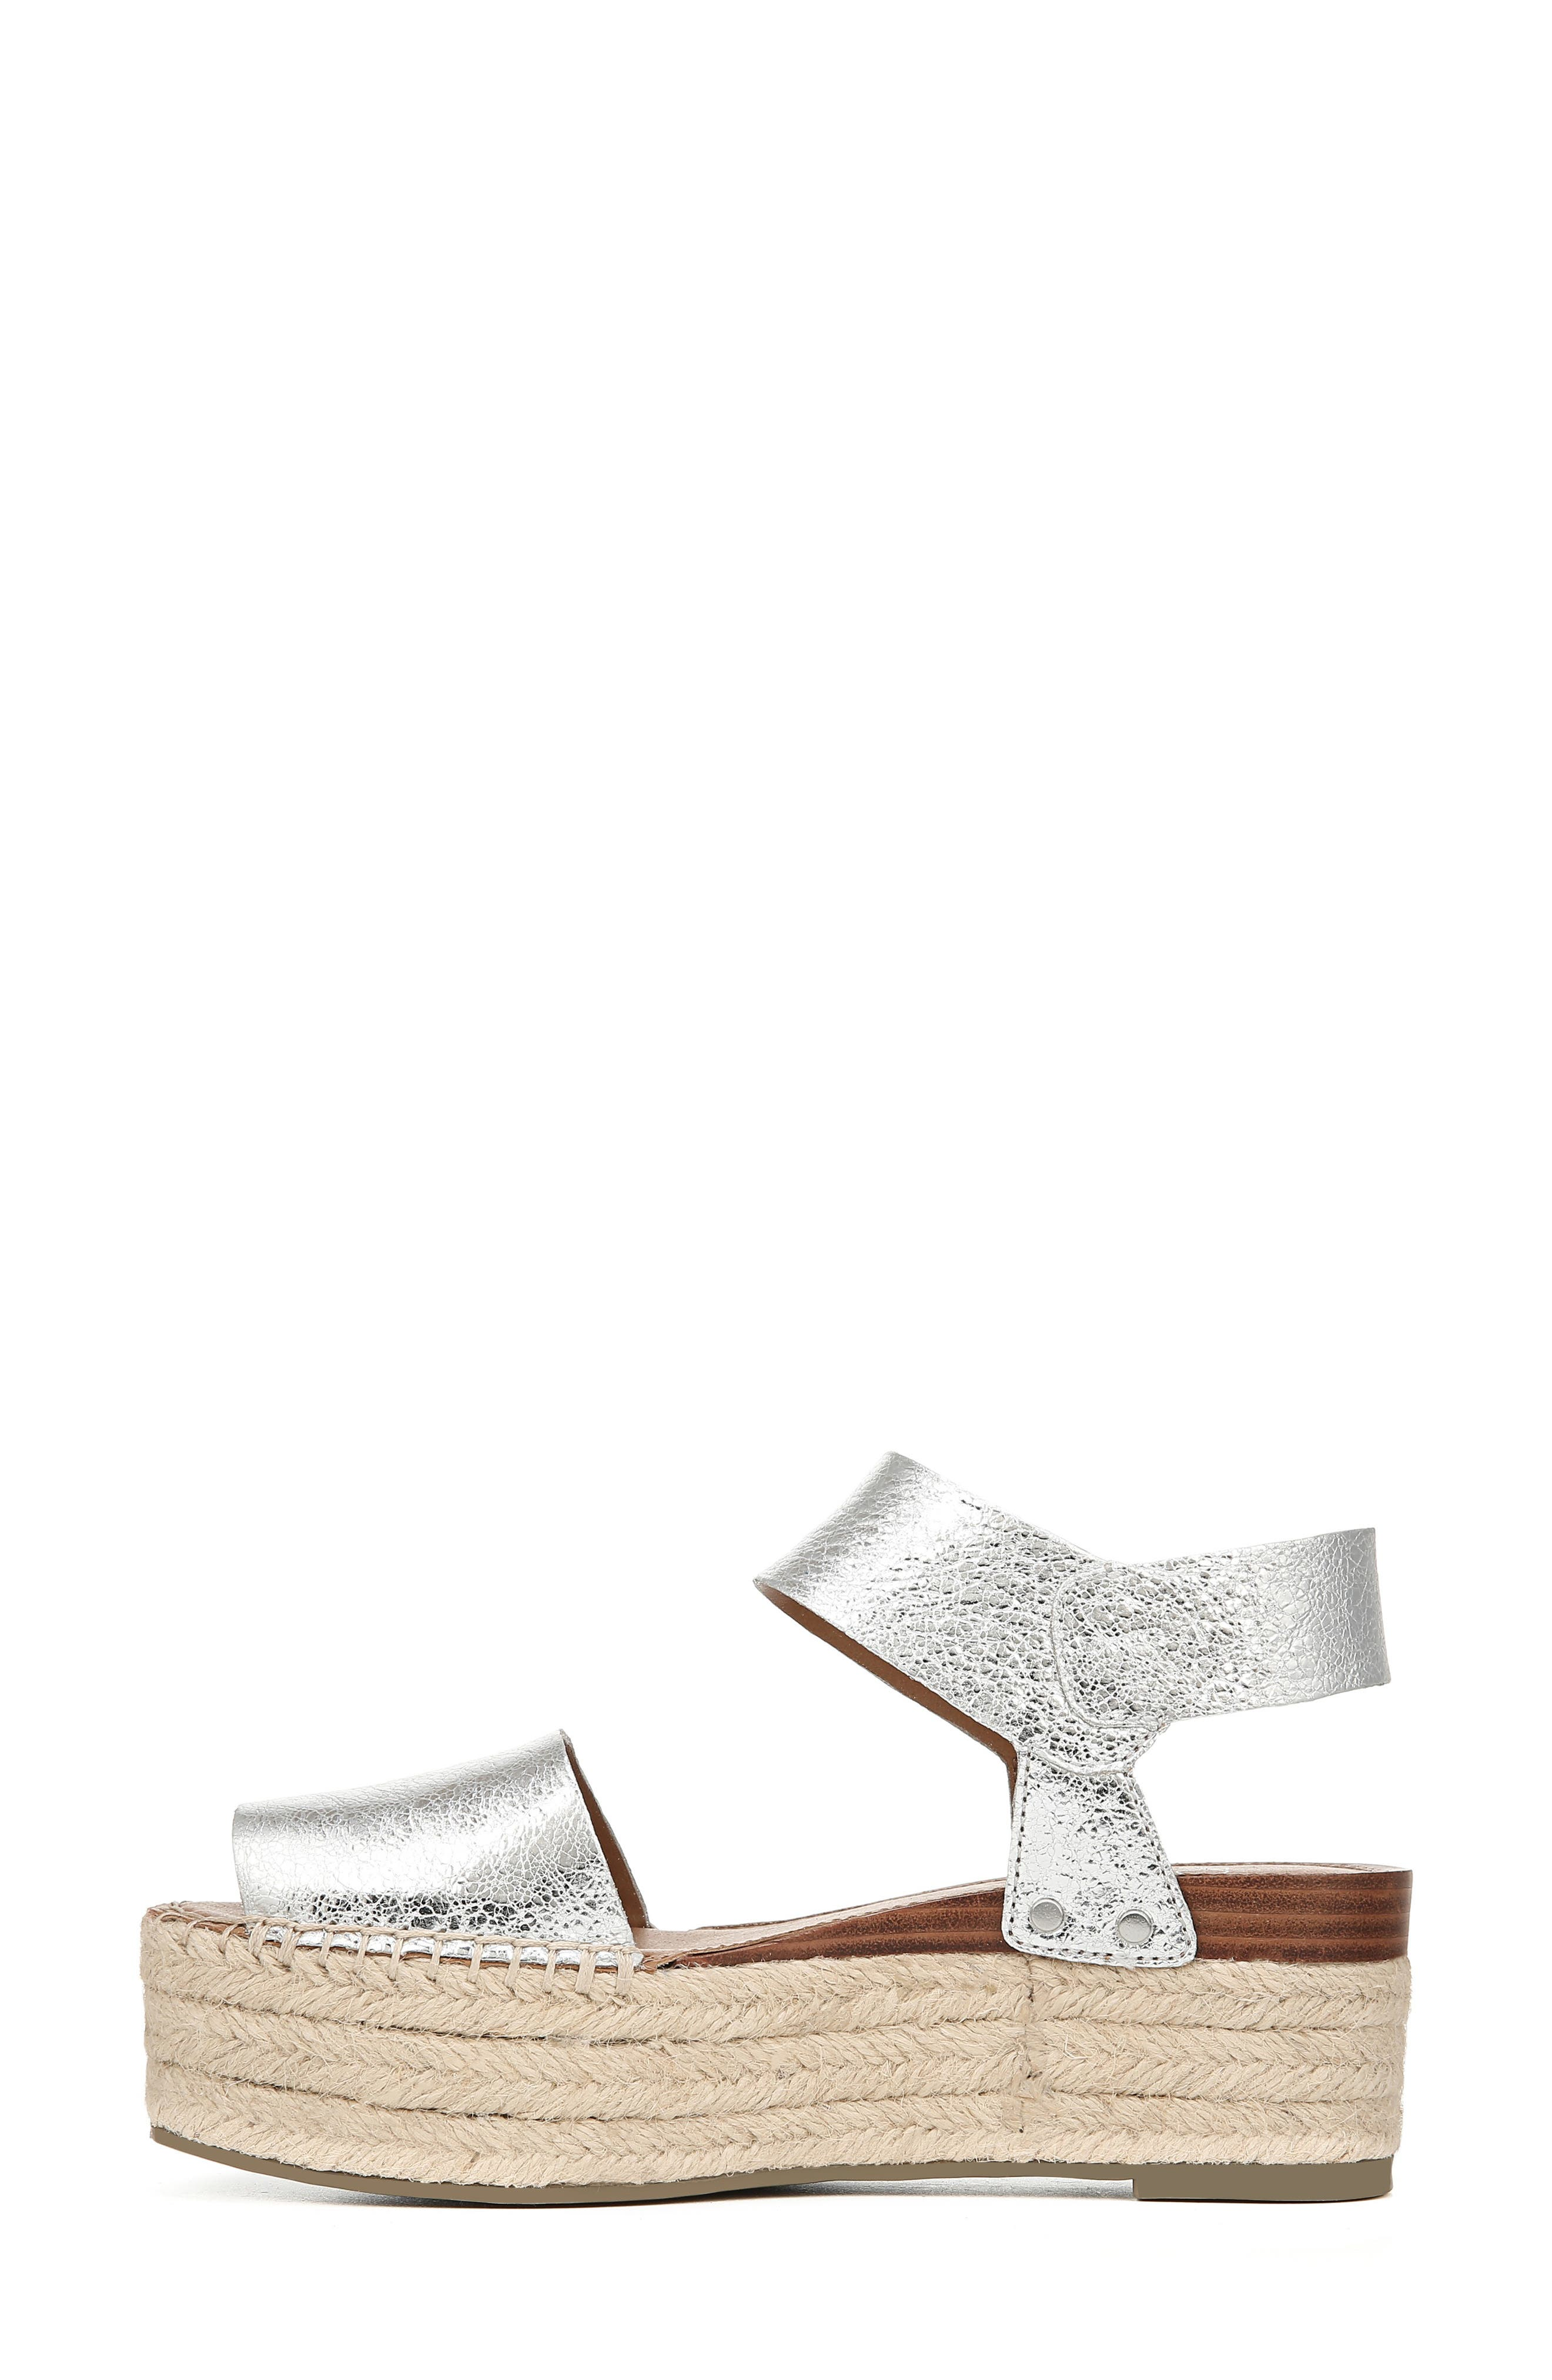 SARTO BY FRANCO SARTO, Leo Platform Espadrille Sandal, Alternate thumbnail 9, color, SILVER LEATHER